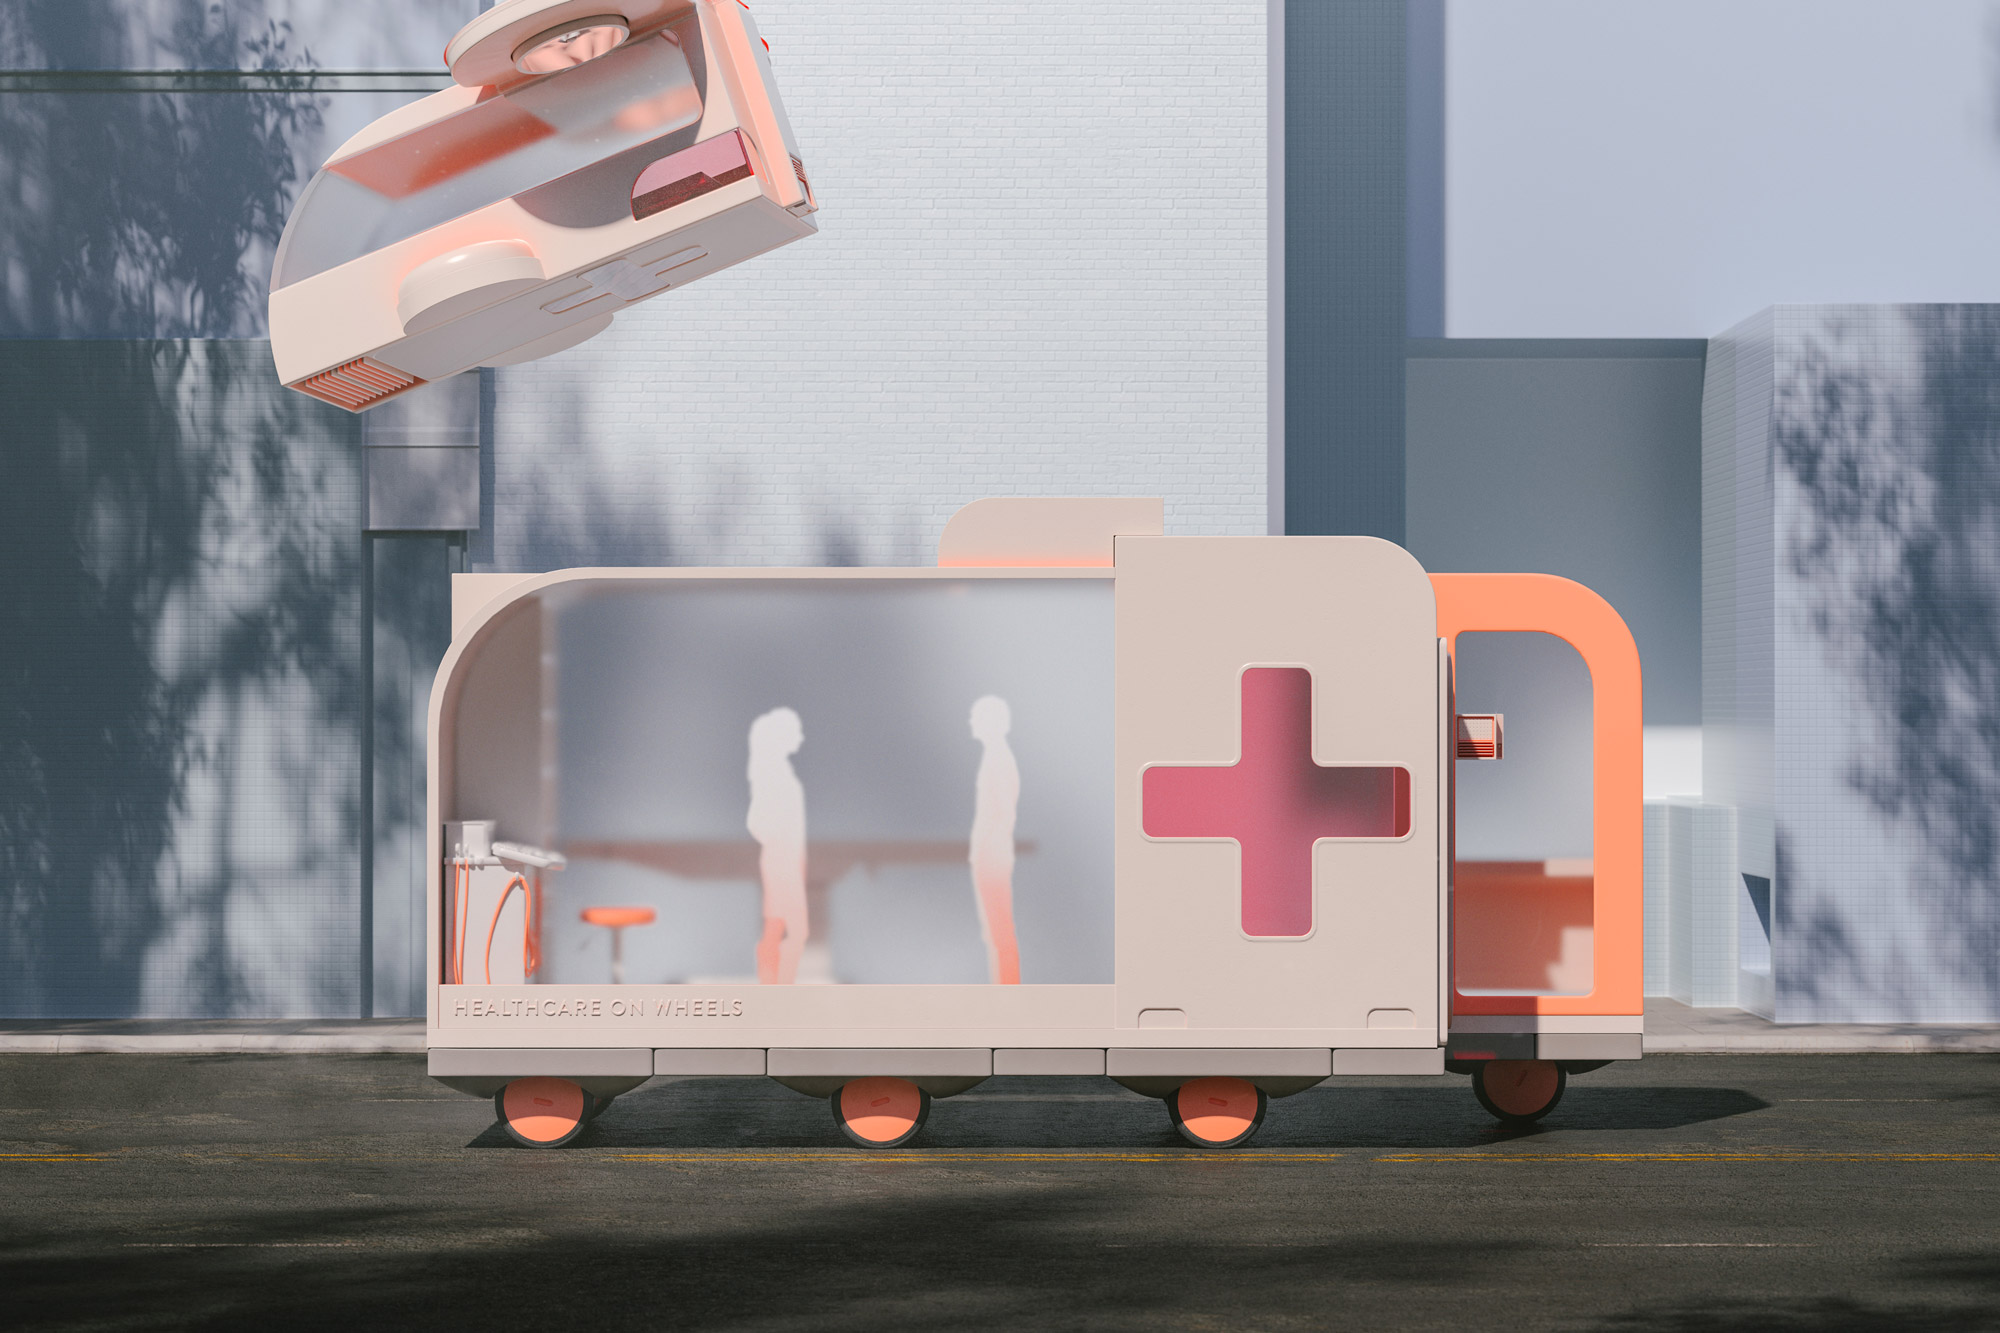 technologyreview.com - Elizabeth Woyke - IKEA designs future autonomous cars that work as hotels, stores and meeting rooms